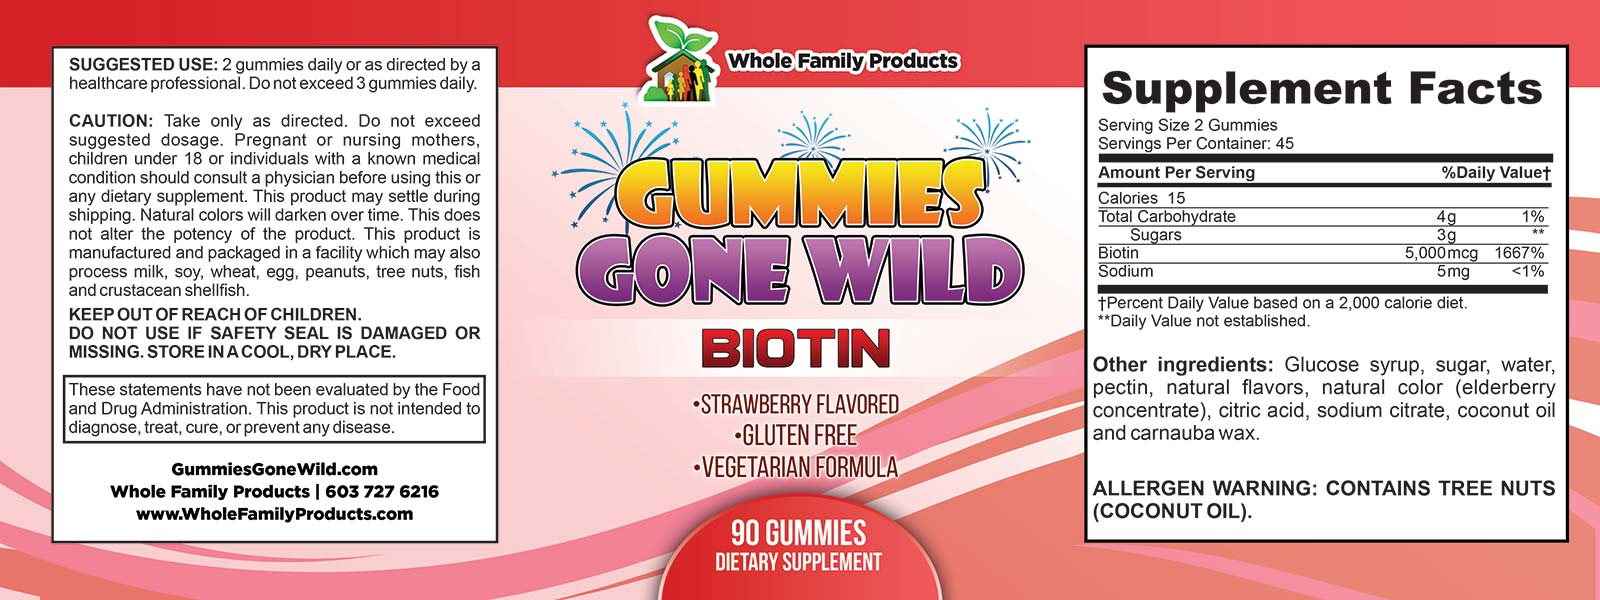 Gummies Gone Wild Bioton Label